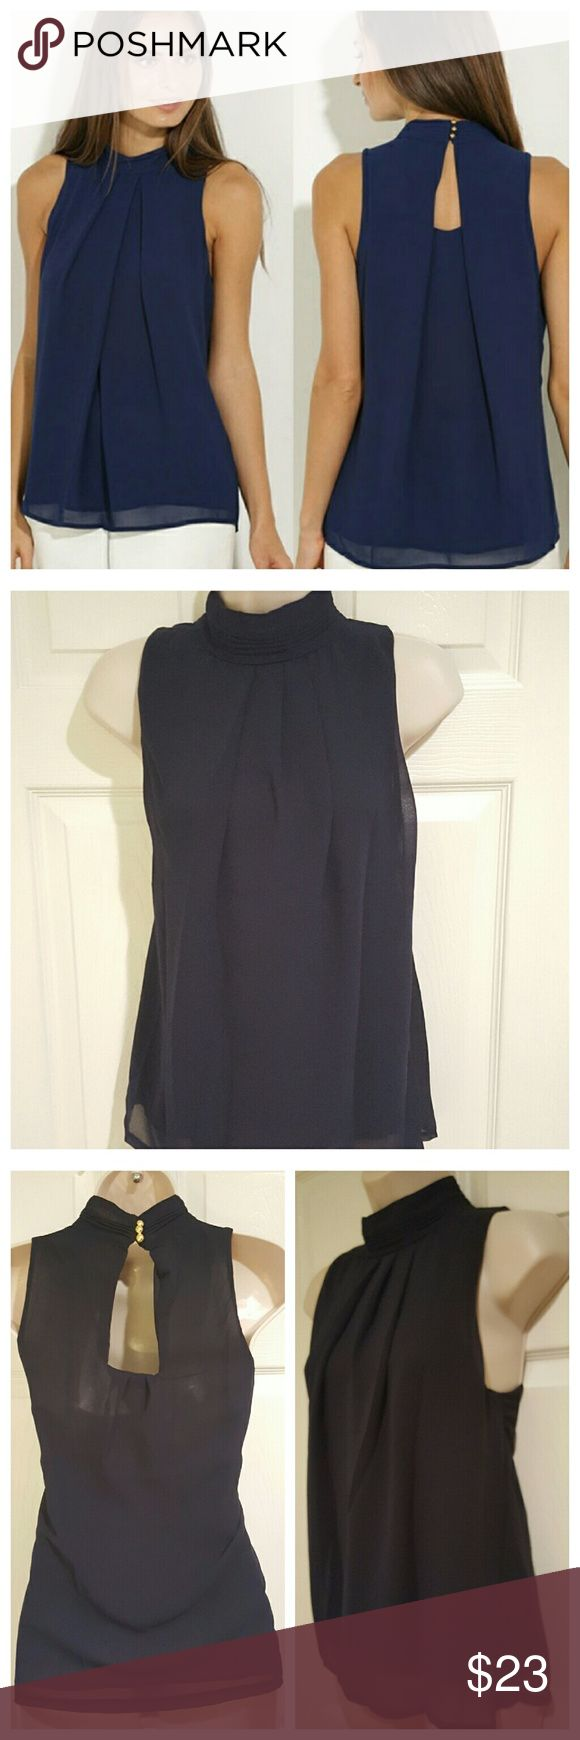 NWOT Navy Chiffon Blouse PRICE DROP New without tags. Dark navy blue color with 3 gold colored buttons at back of neck closure. Chiffon layered sleeveless blouse. Small upper back opening. Great for day/night out, can be dressed up with a blazer for professional look.  Multiple sizes available, see 4th pic for size chart. Tops Blouses